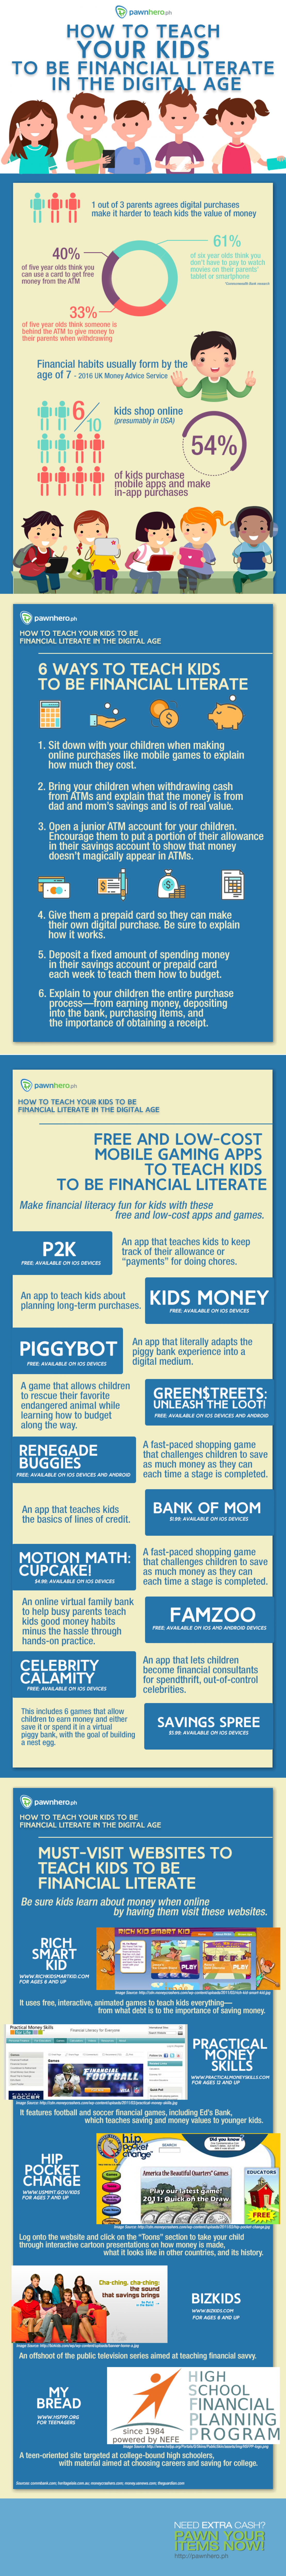 How to Teach Your Children to be Financially Smart in the Digital Age Infographic